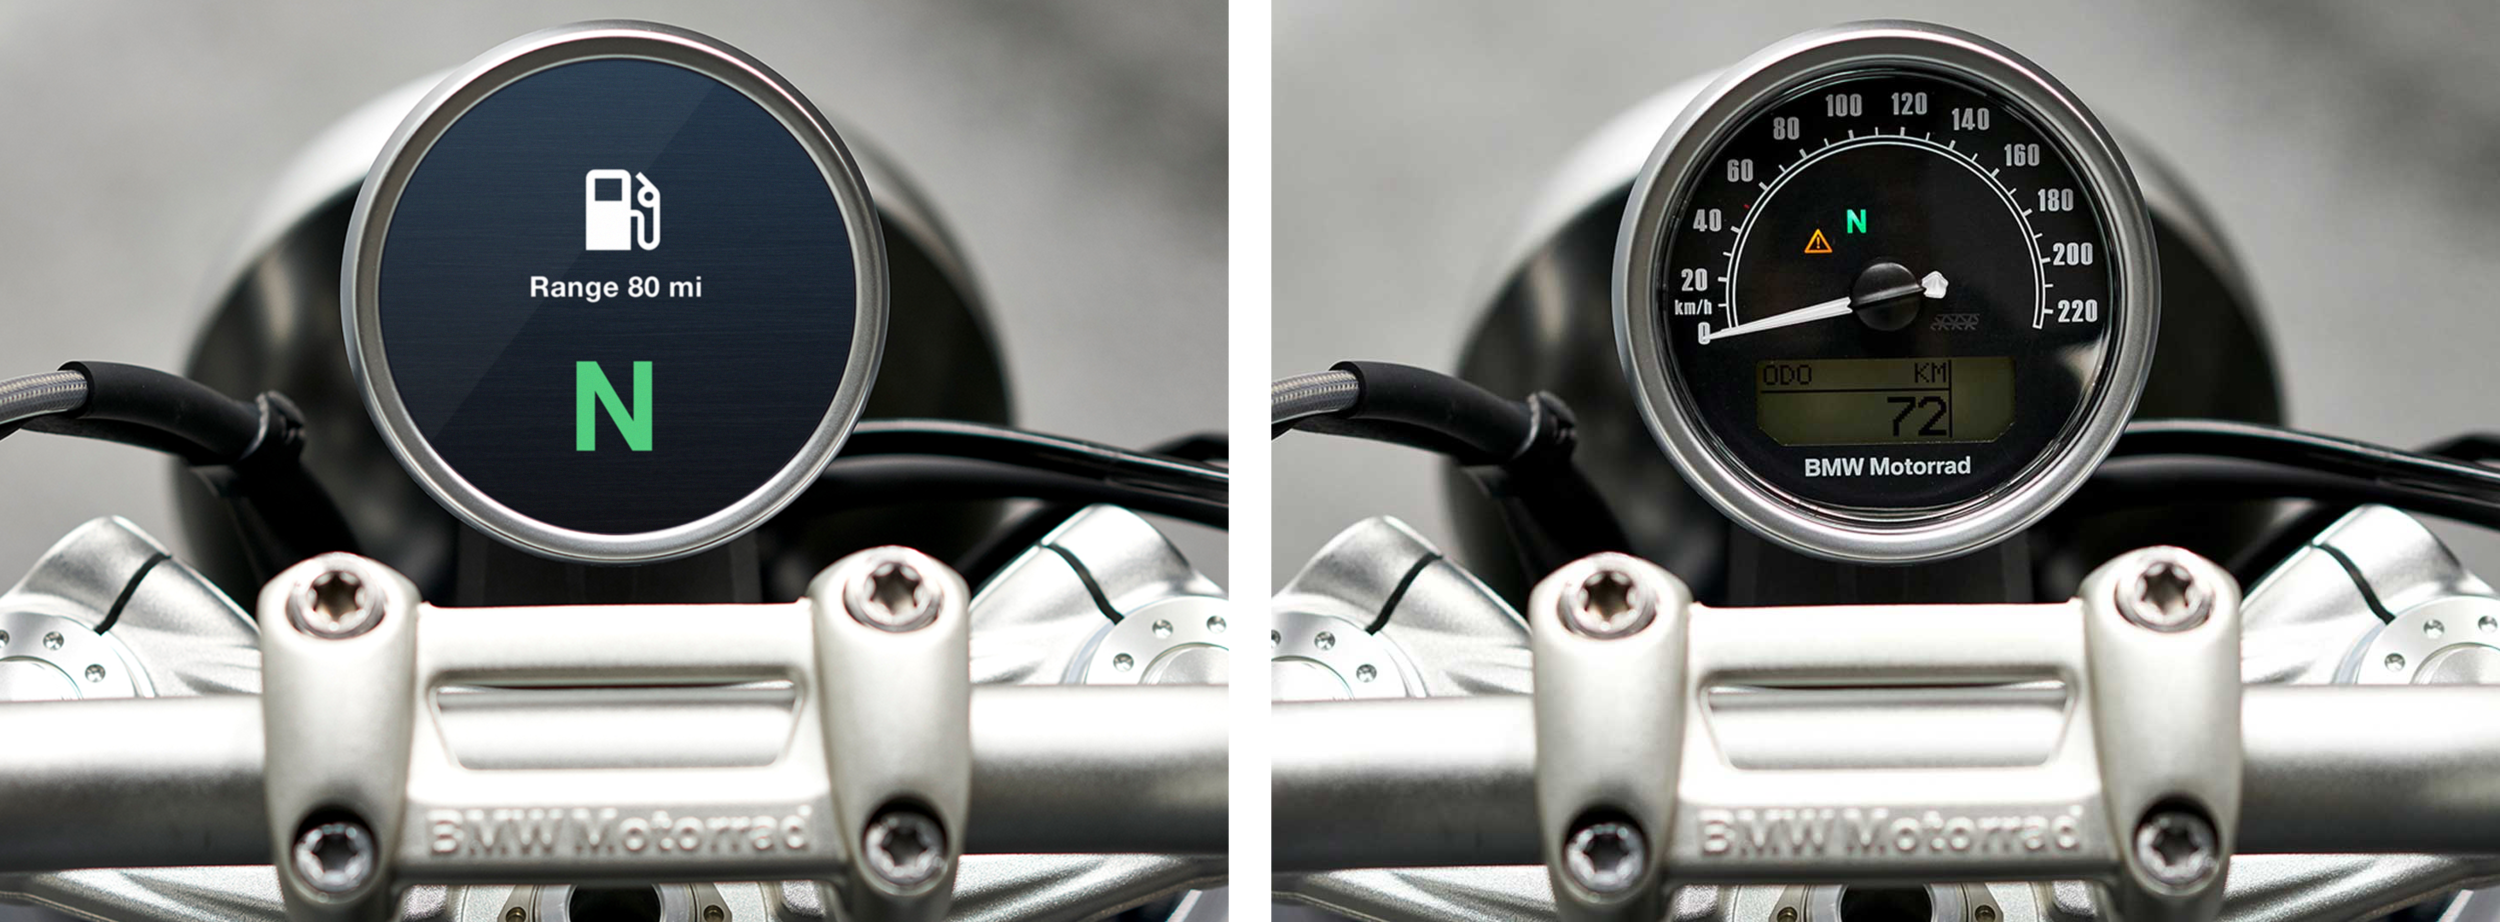 BMW R nineT interfaces